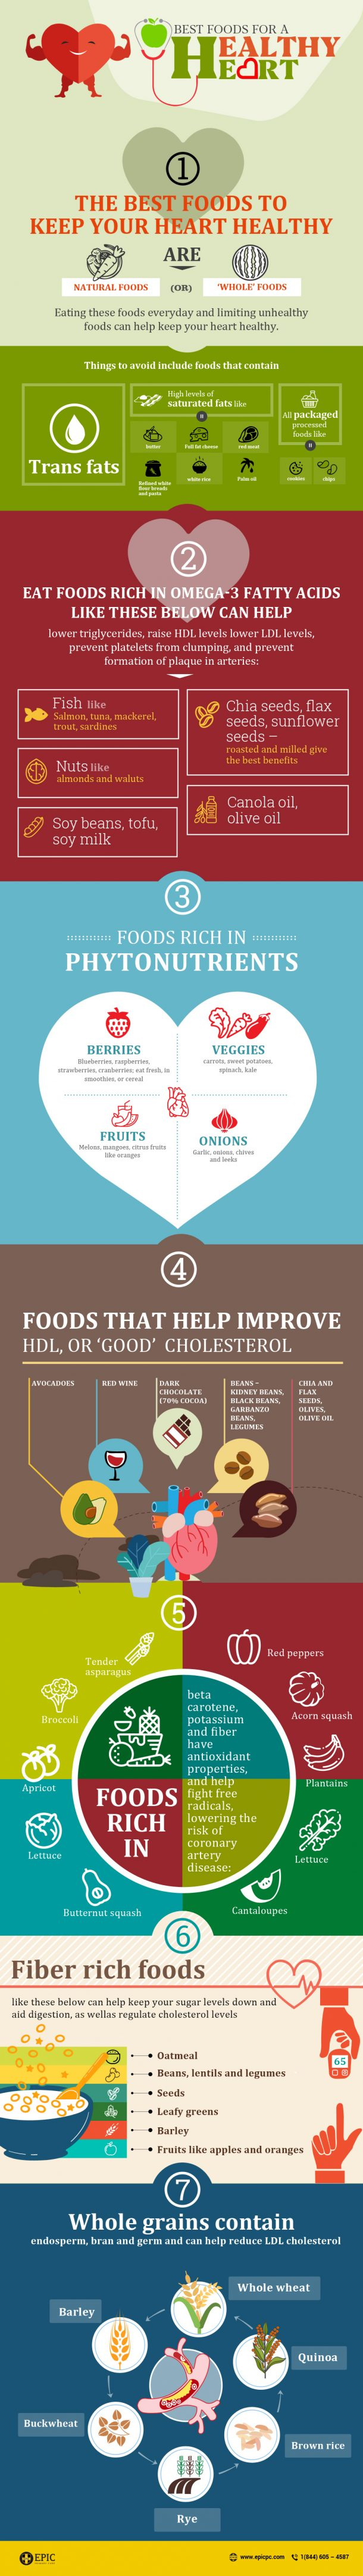 Foods for healthy heart infographic